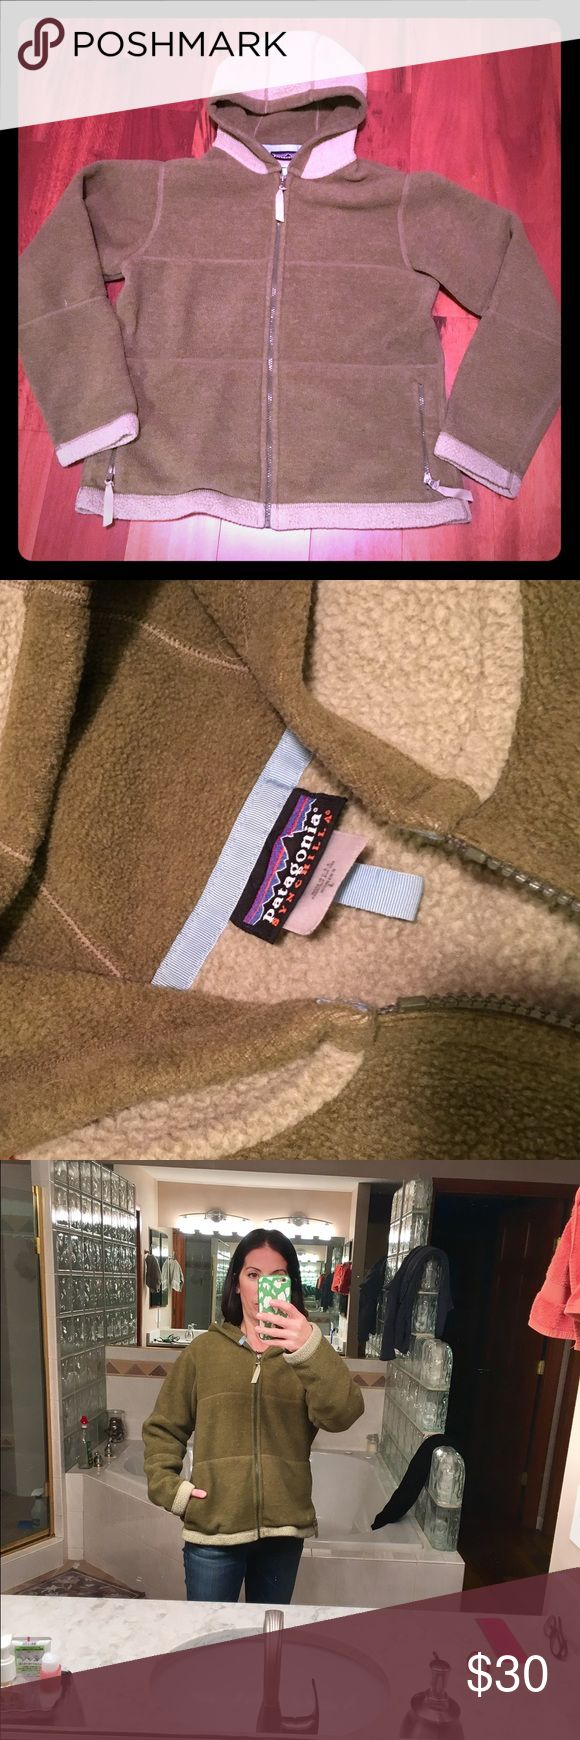 Patagonia fleece Nice two toned green Patagonia fleece jacket with hood. Good condition- minor pilling. Patagonia Jackets & Coats